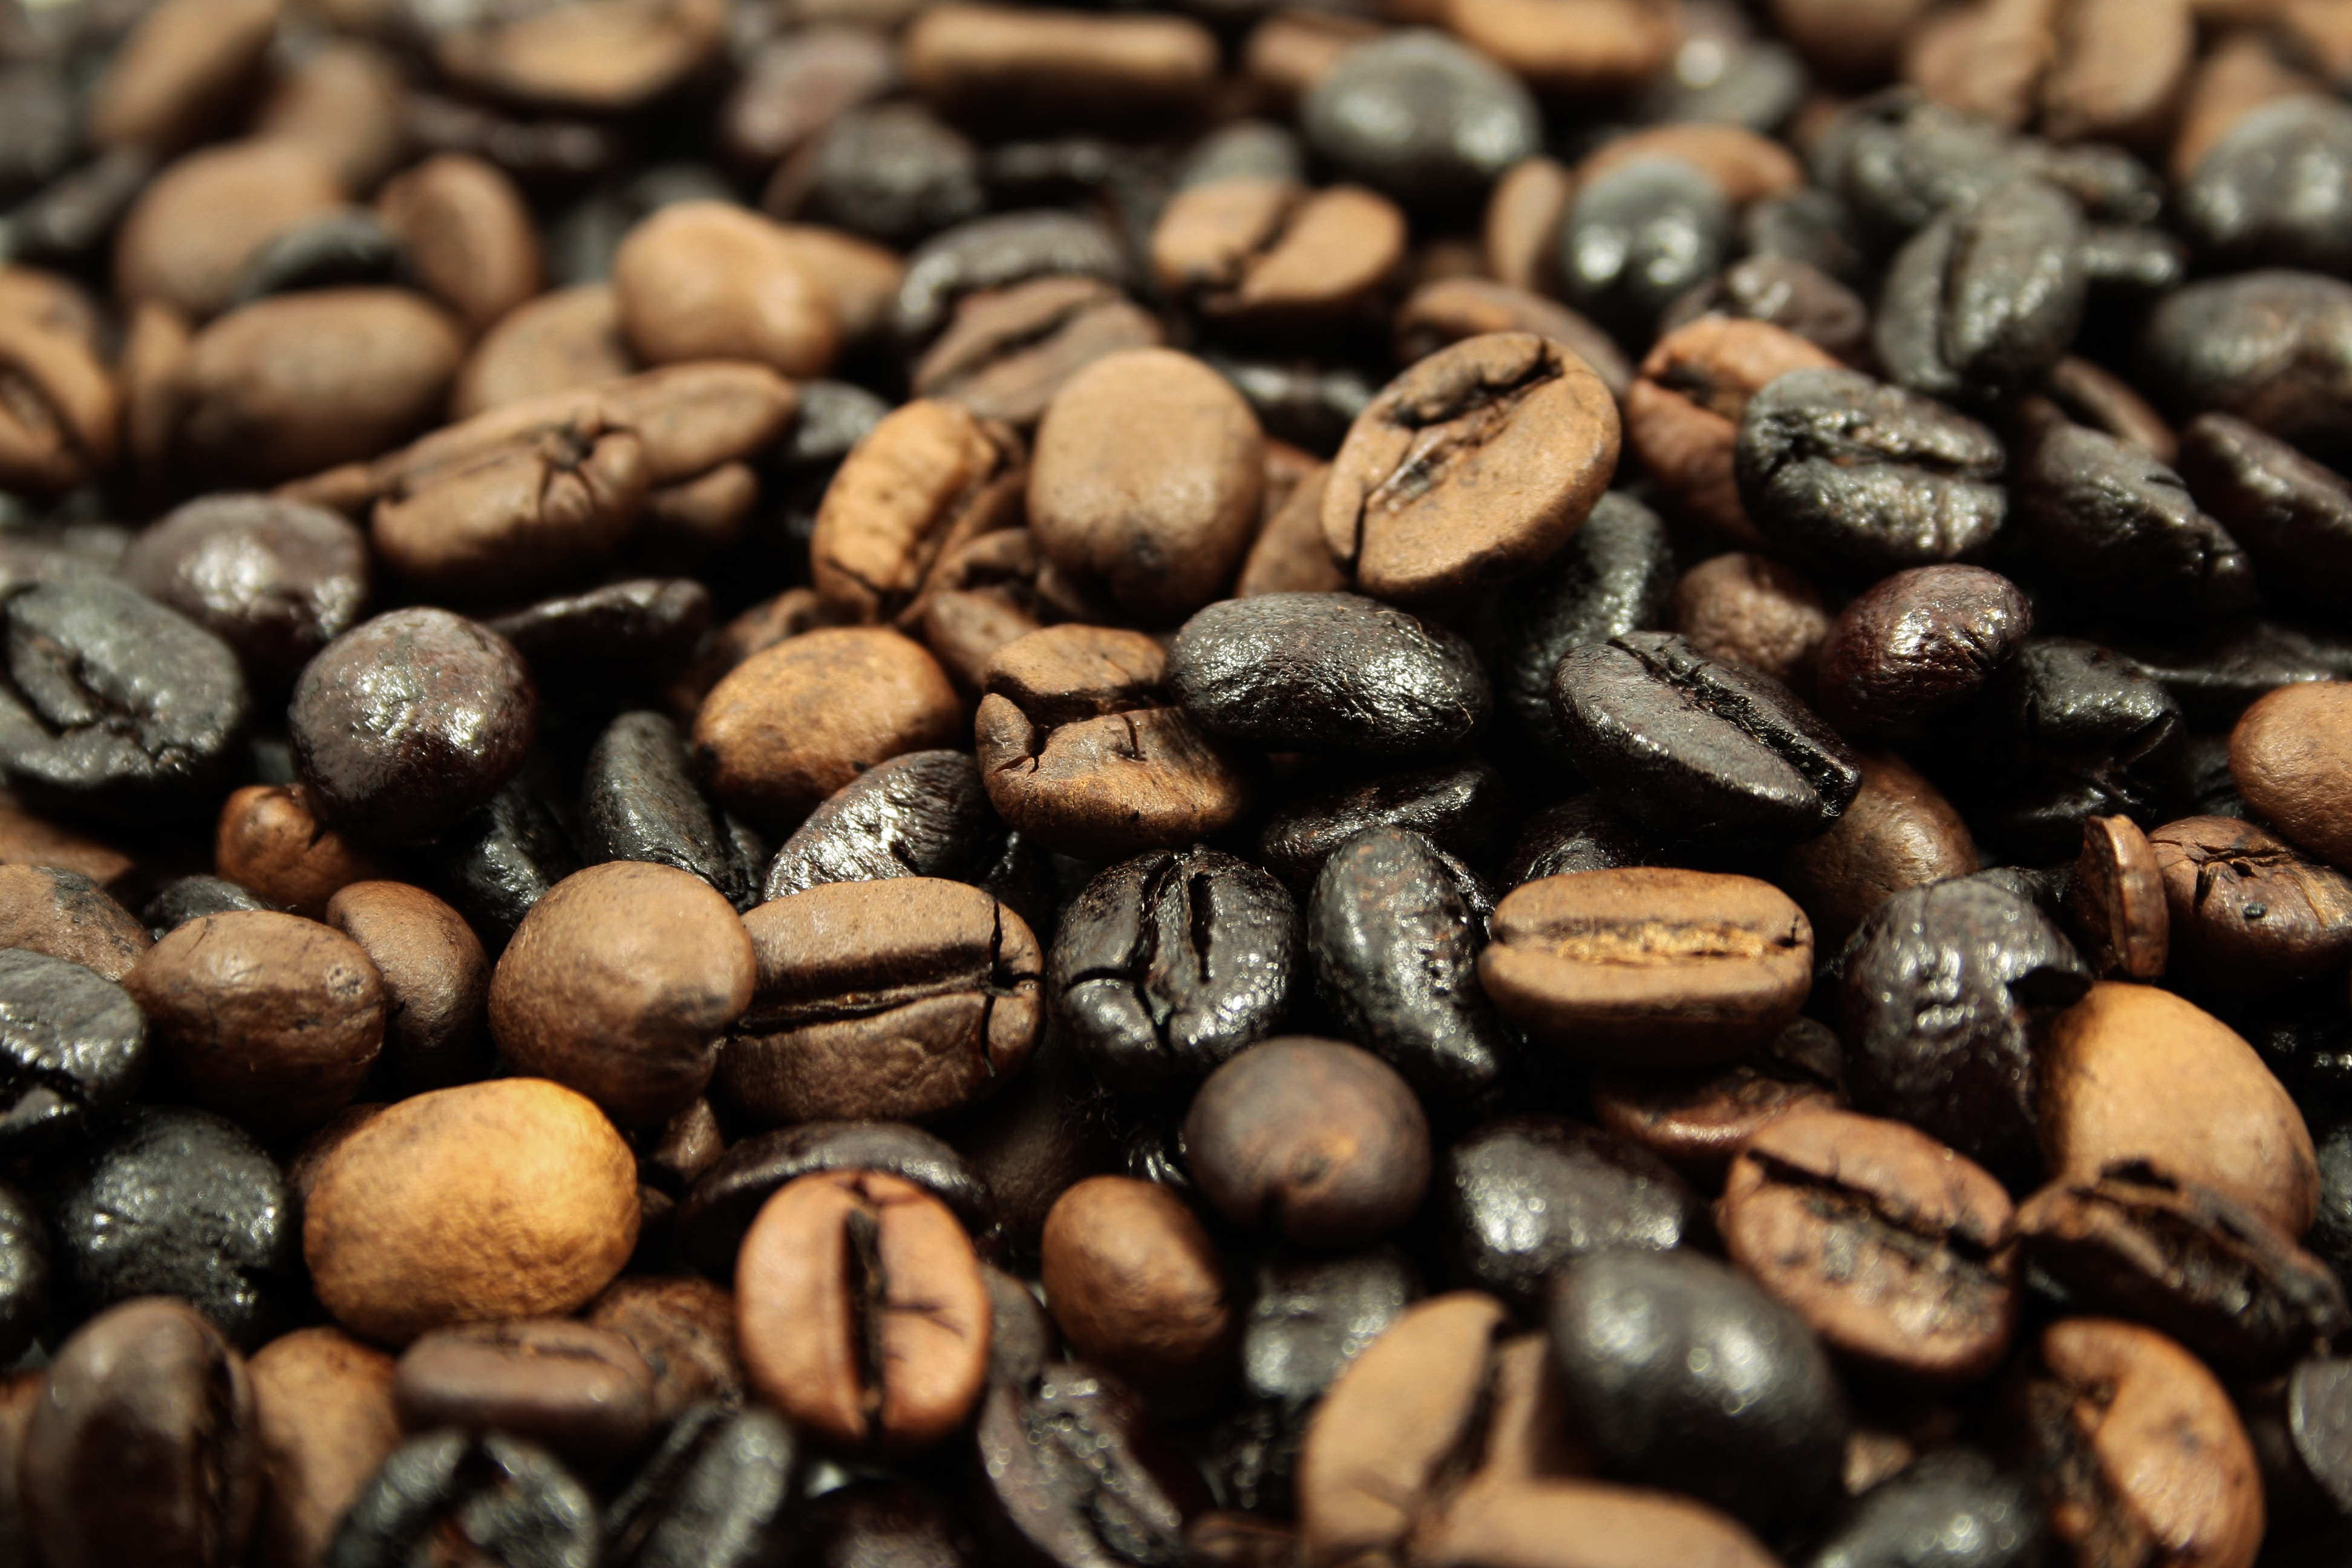 https://www.pexels.com/photo/food-beans-caffeine-coffee-111128/